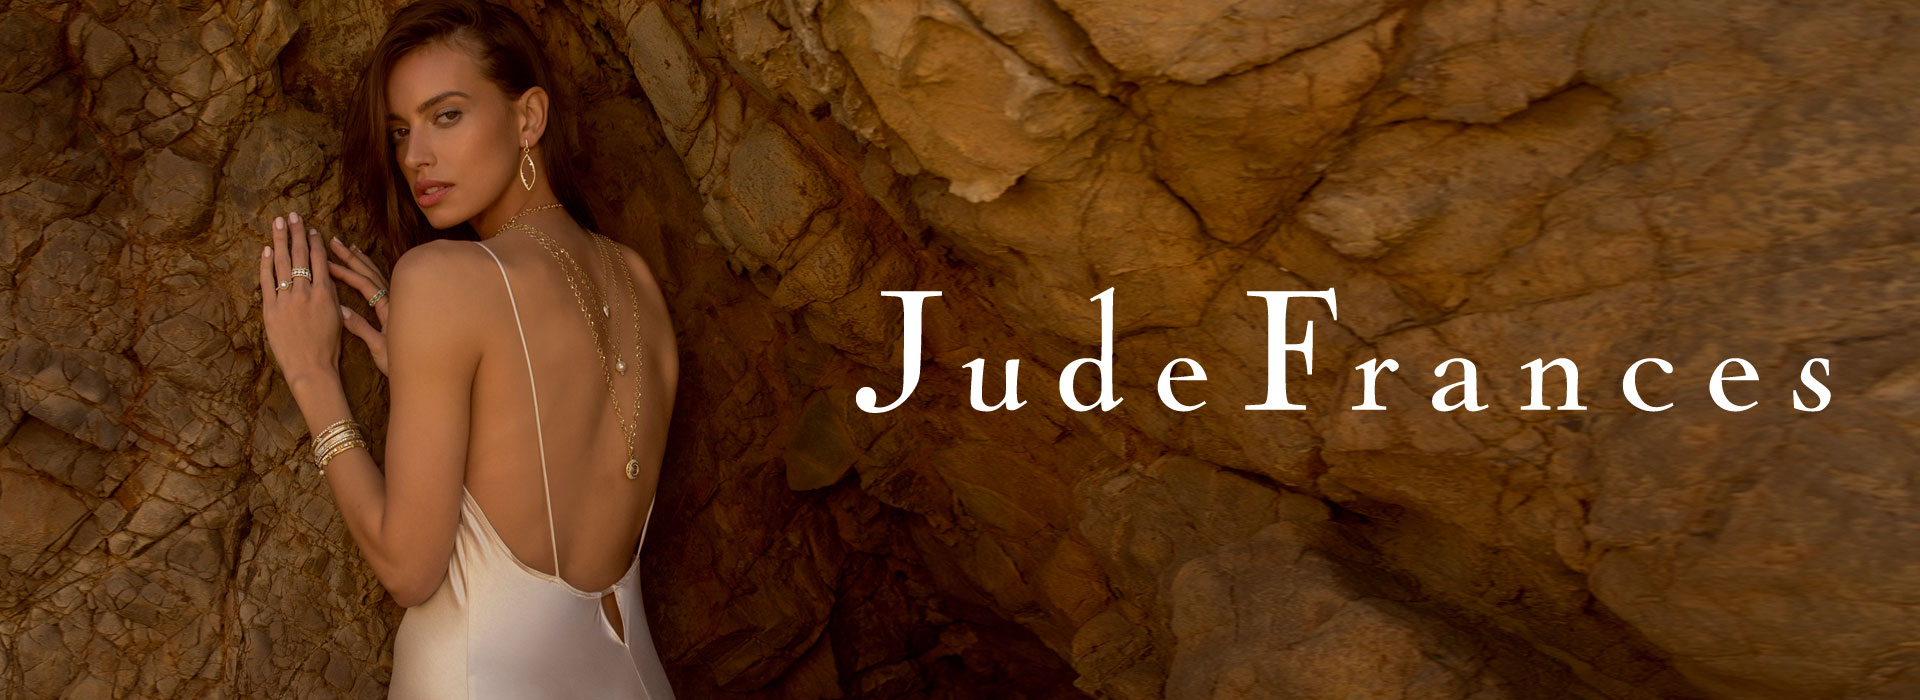 Shop Jude Frances Jewelry